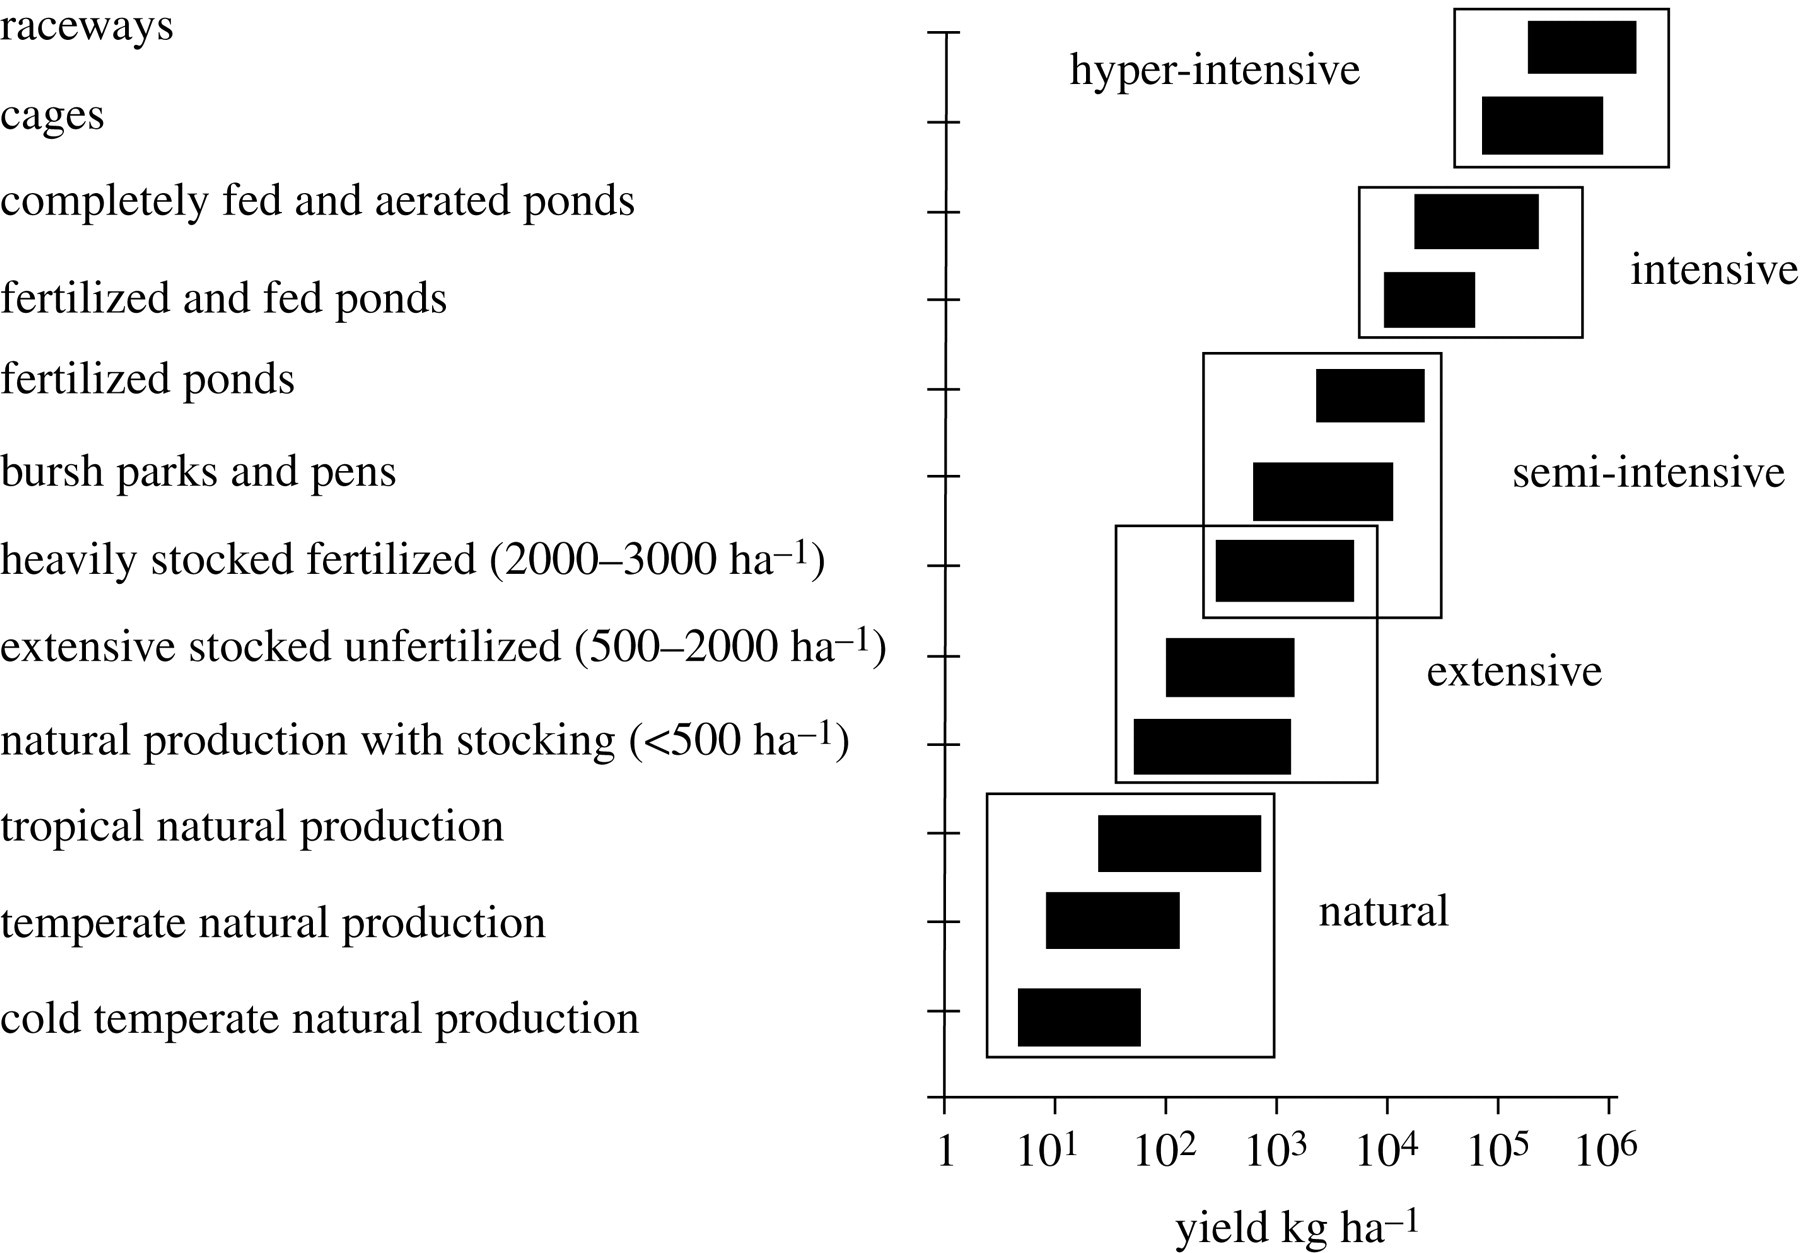 Inland Capture Fisheries Philosophical Transactions Of The Royal Society B Biological Sciences